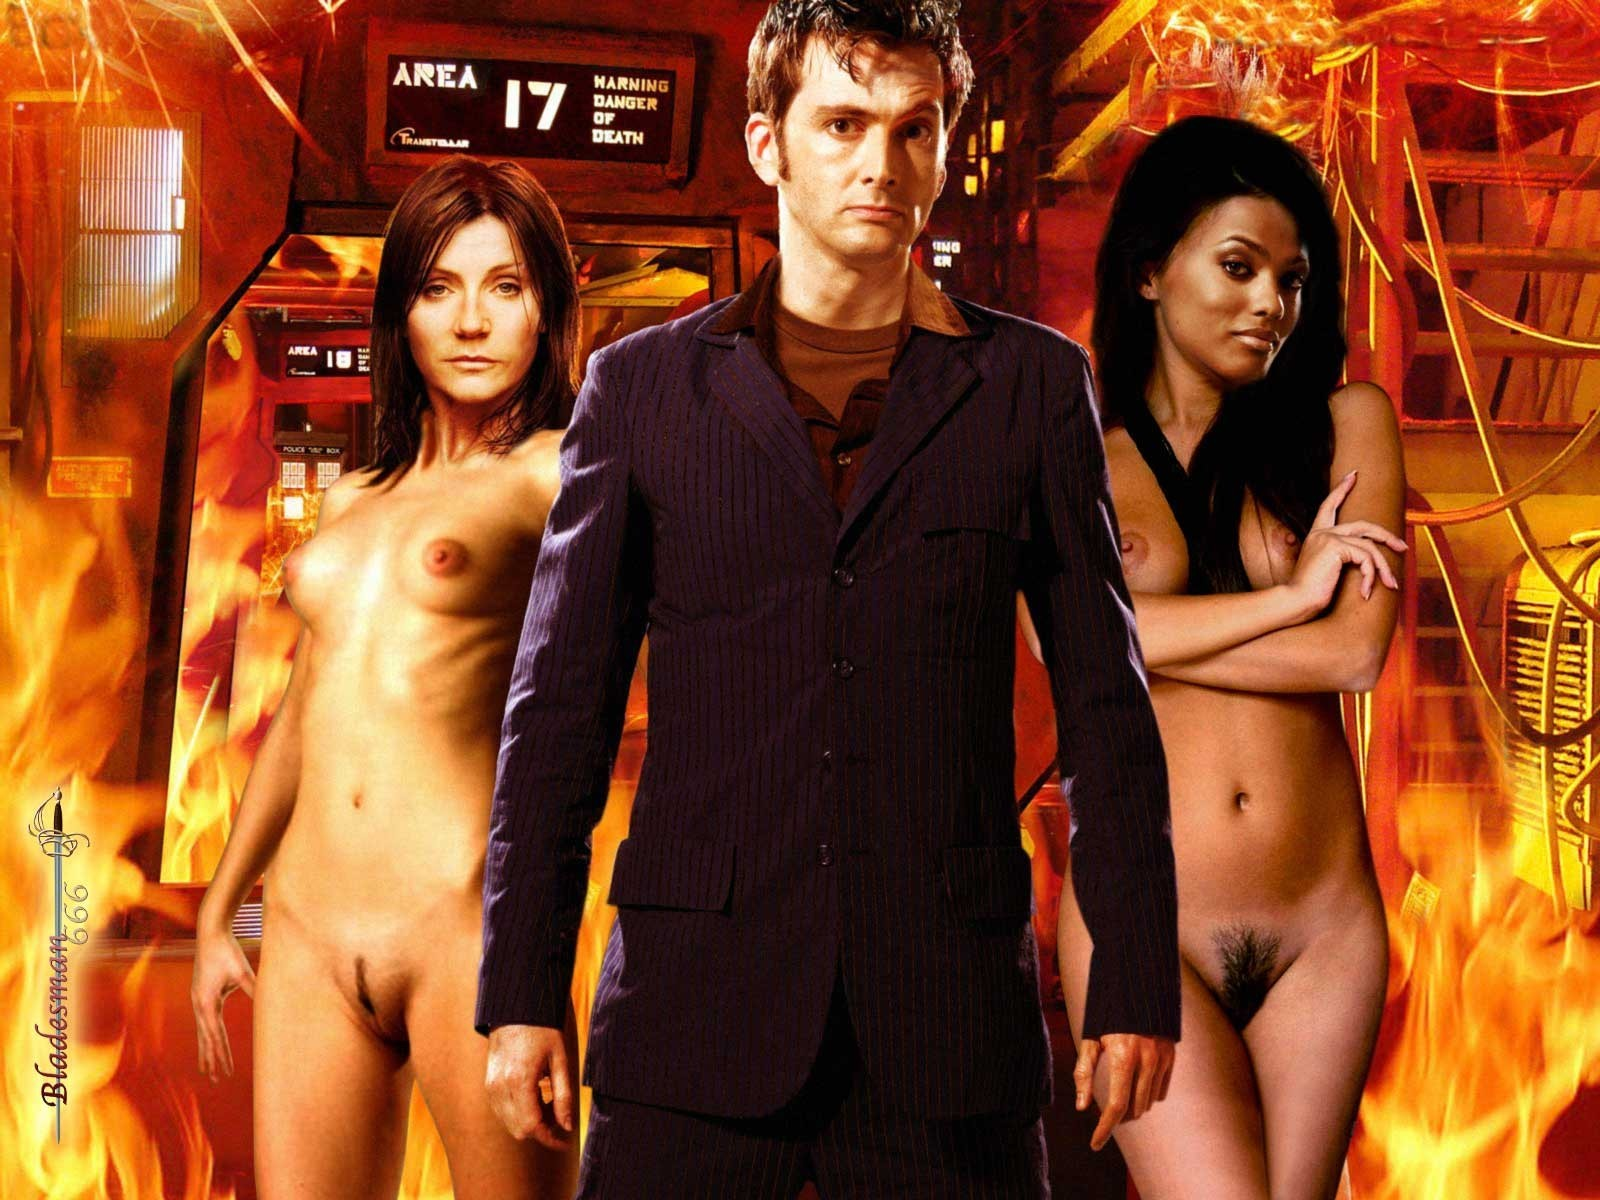 doctor-who-and-torchwood-all-girls-nude